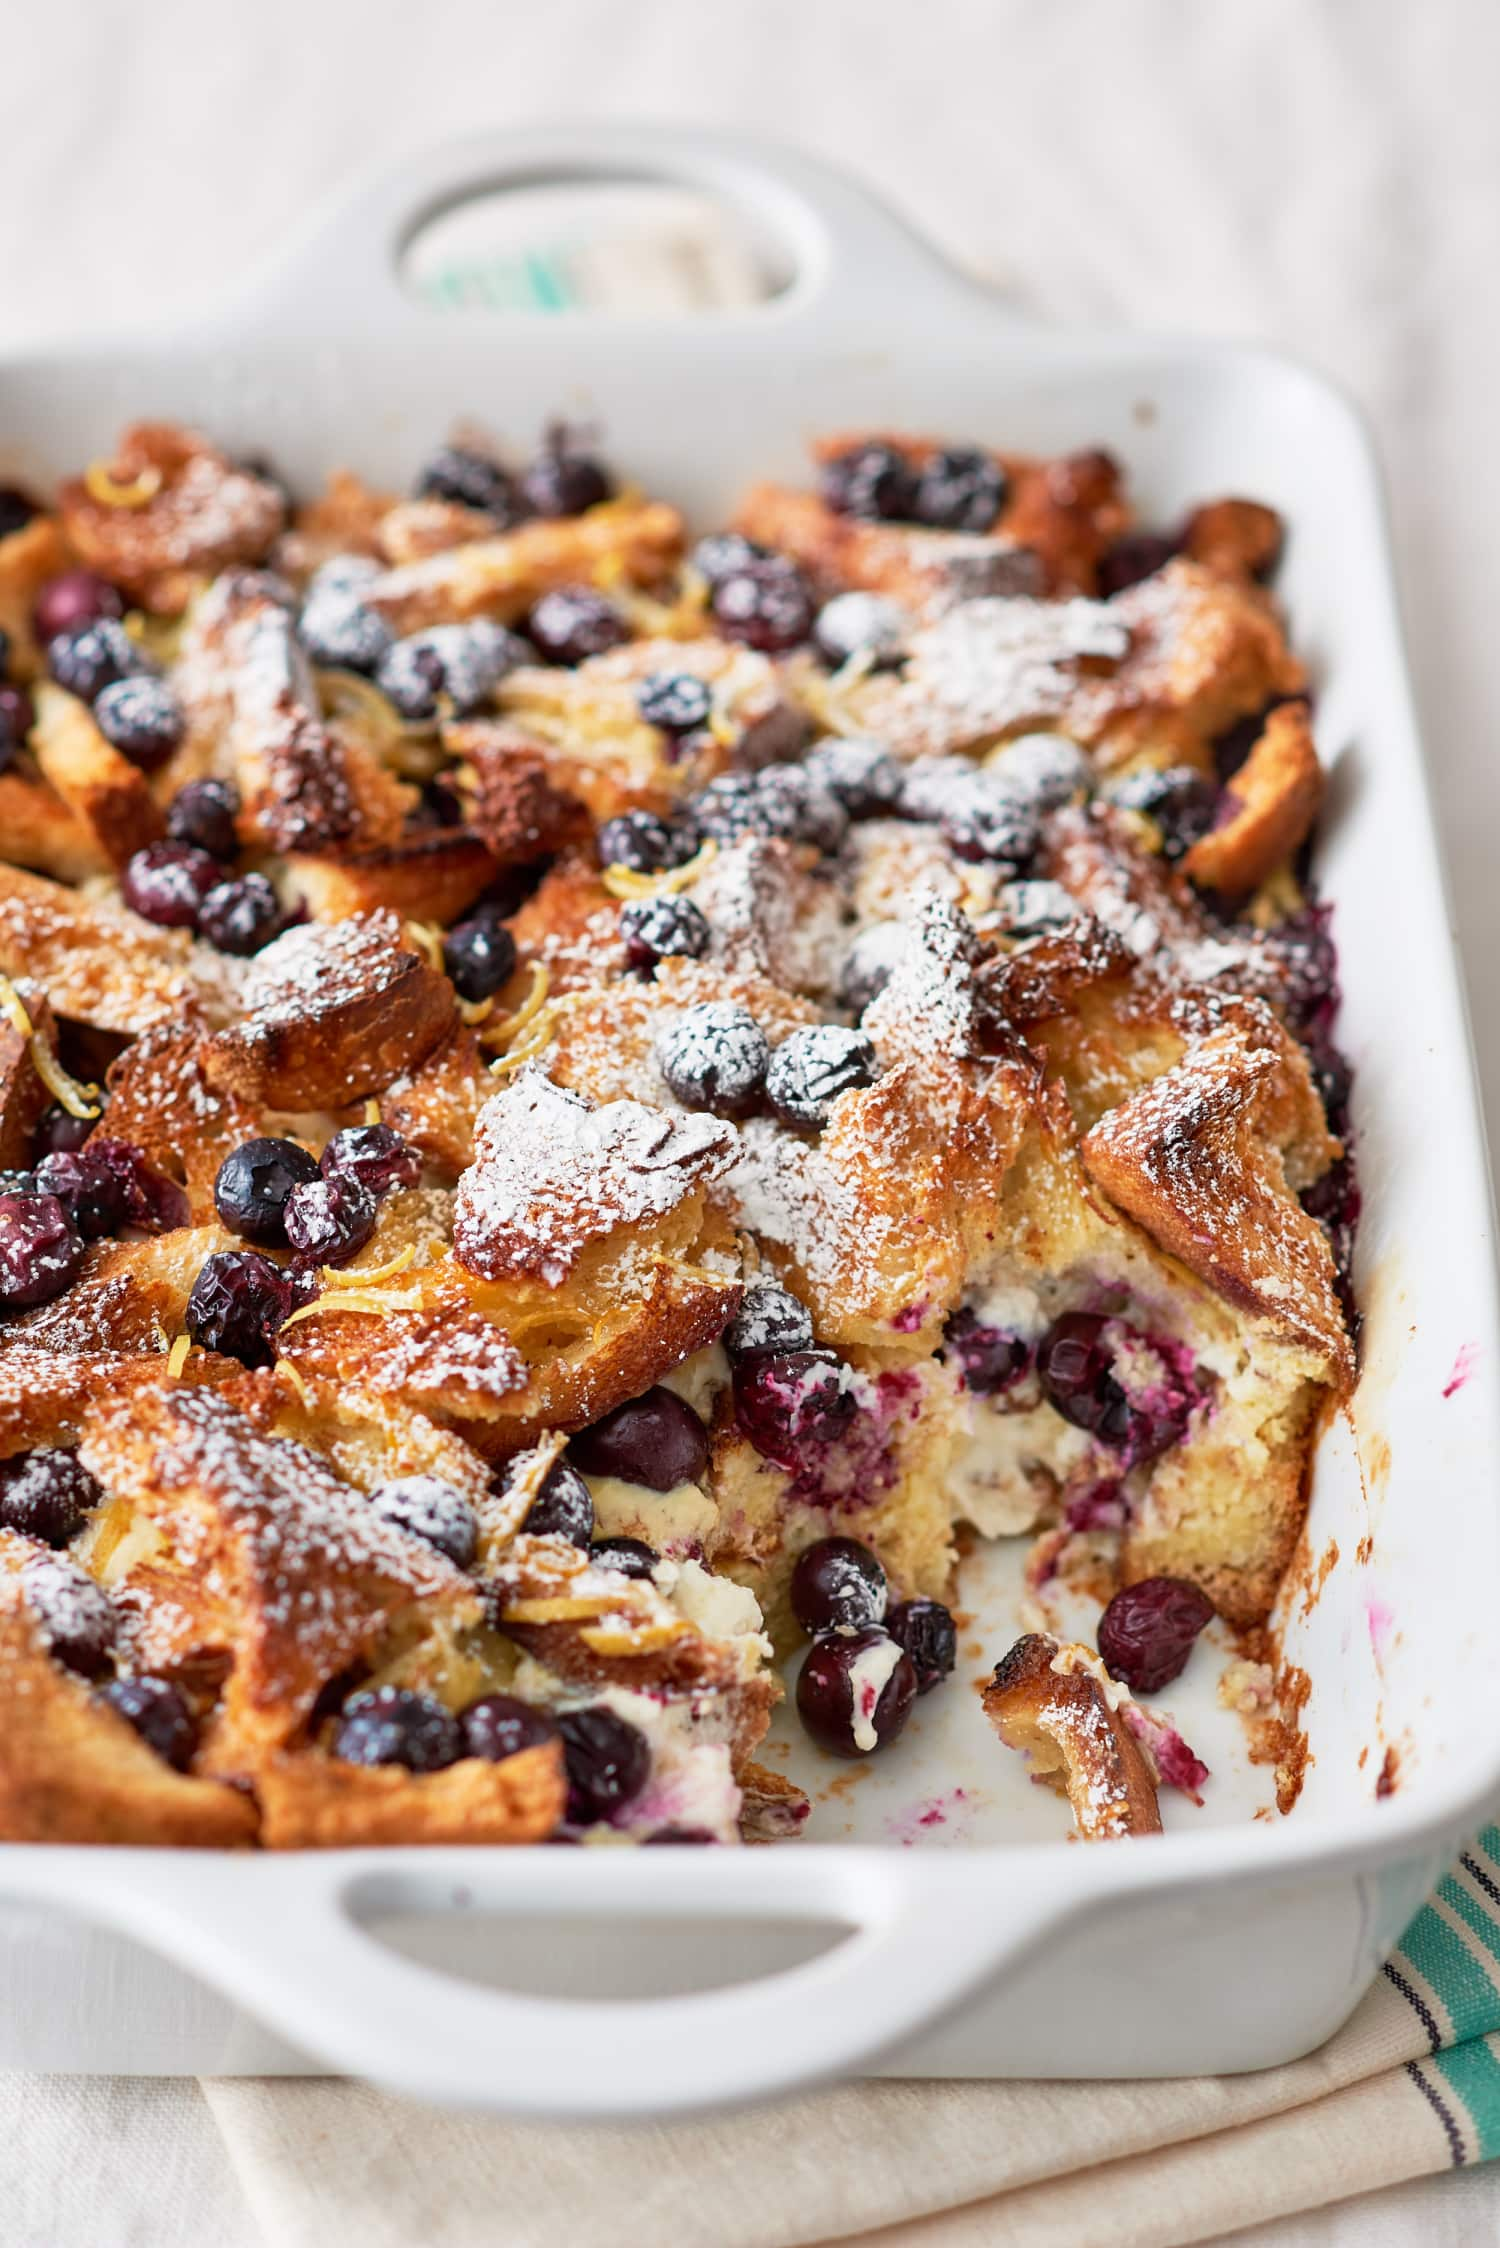 5 Make-Ahead Brunch Recipes for a Festive Morning